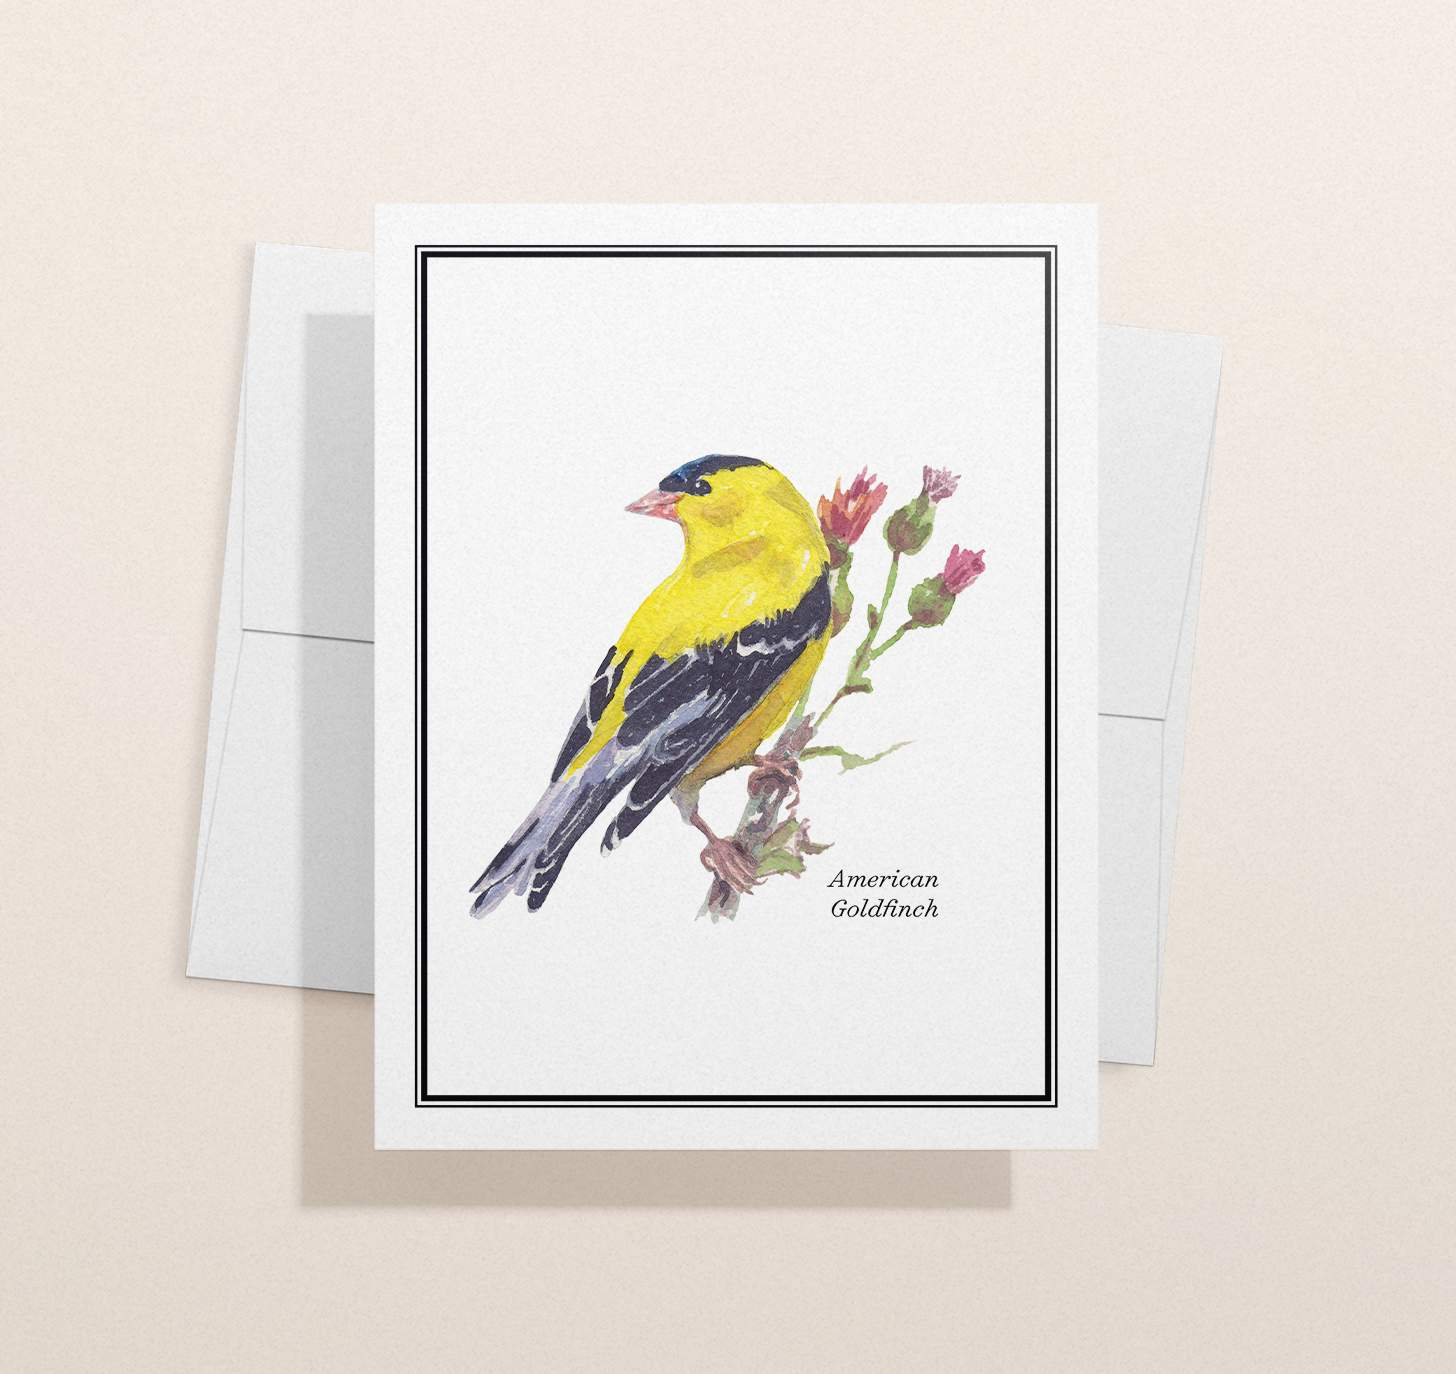 Yellow and gold bird sitting on green branch design with envelope and light brown background